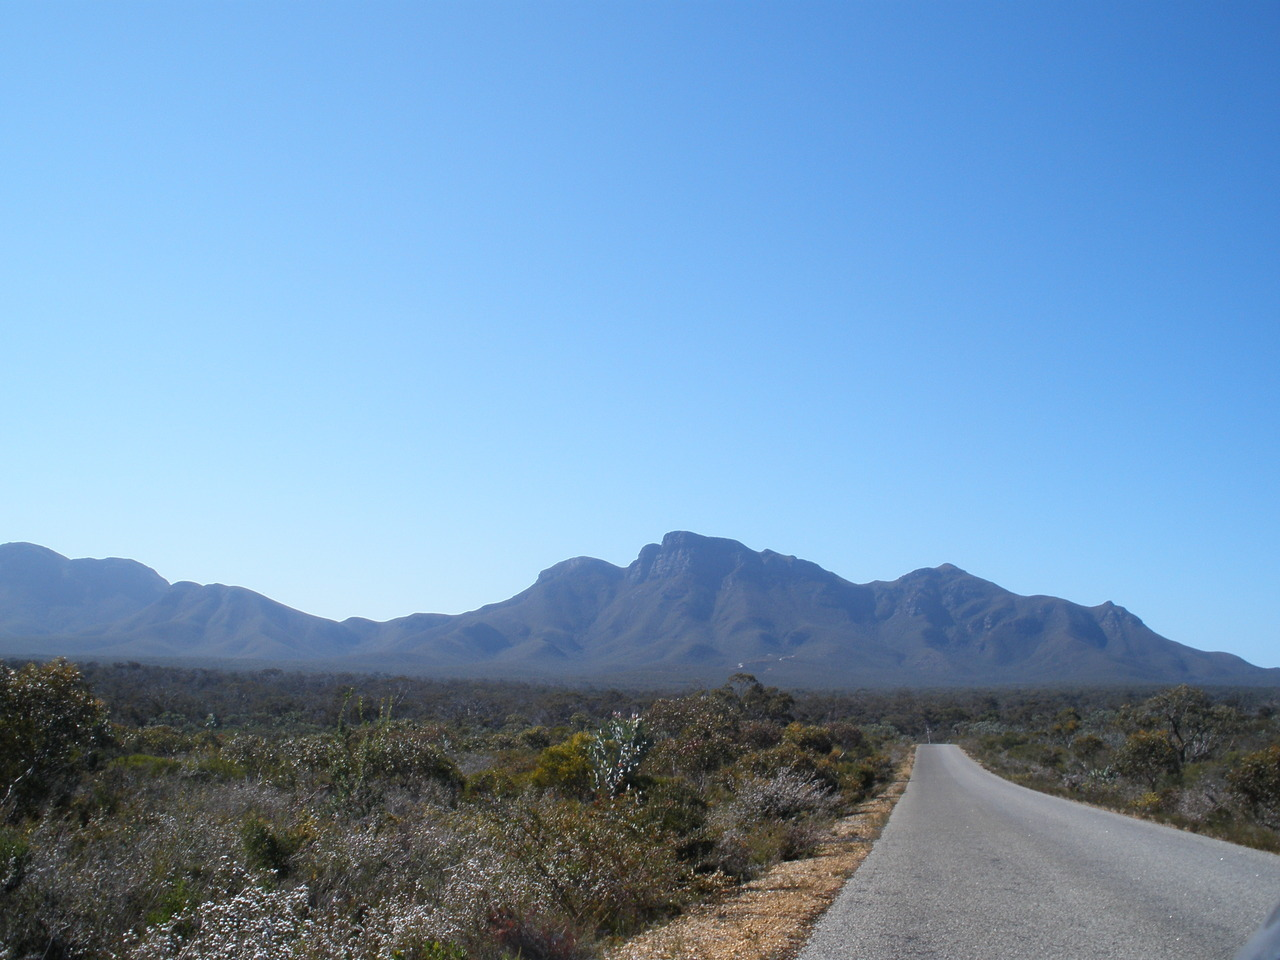 The road to the stirling ranges.